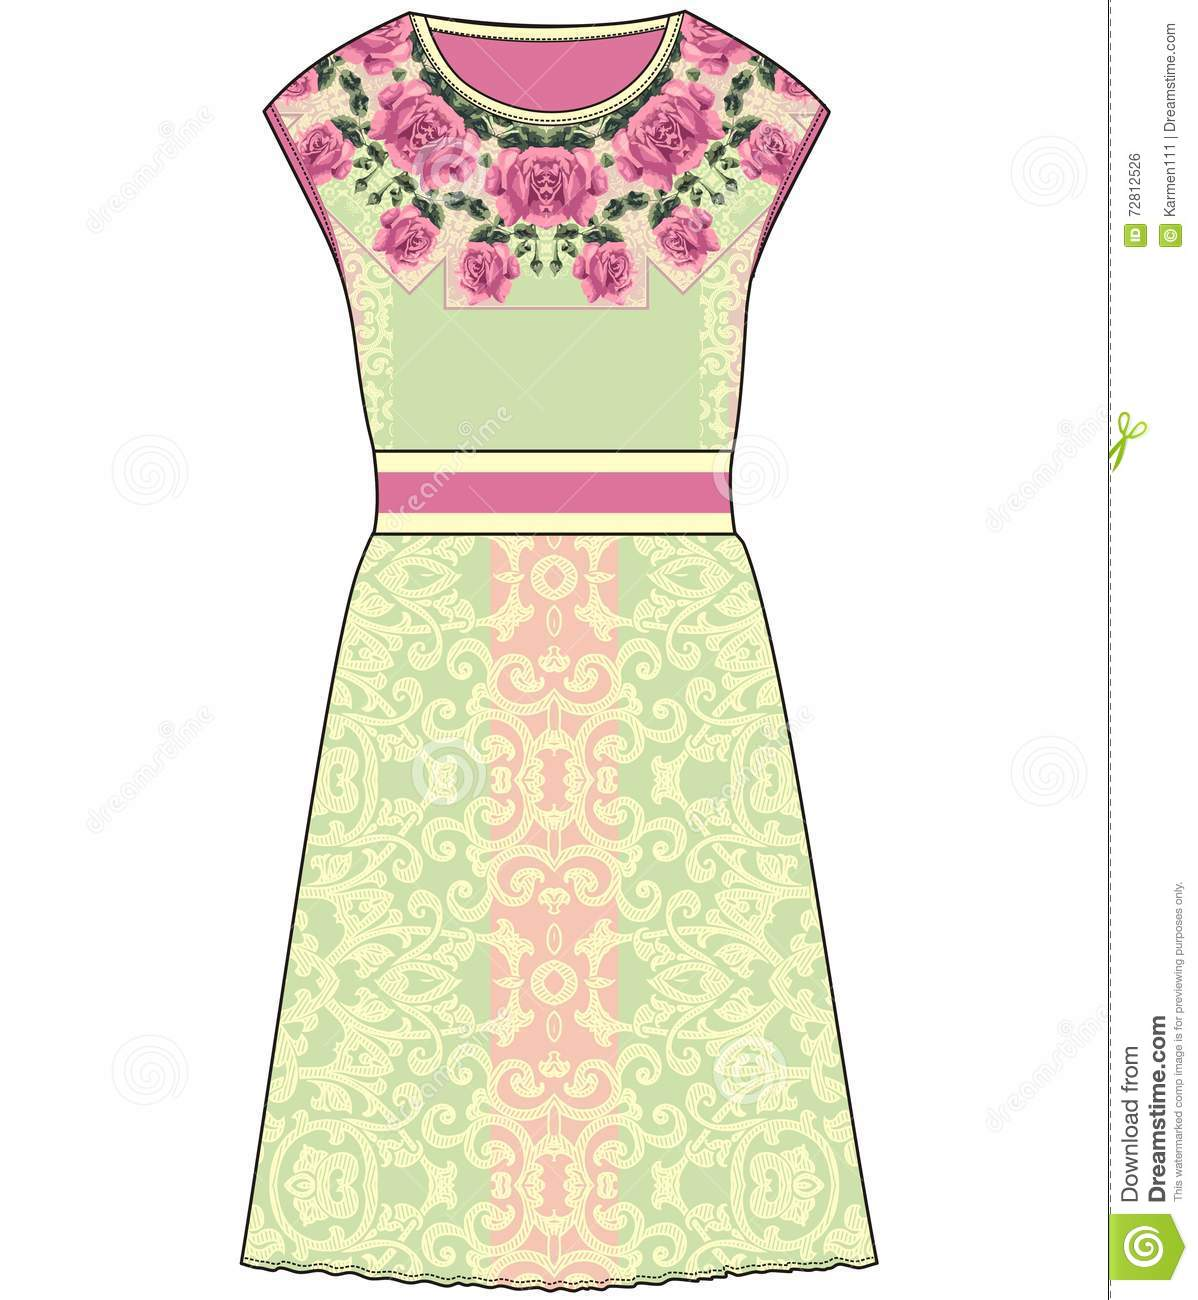 Sketch Summer Female Dress With Pastel Color Fabric Roses And Lace ...